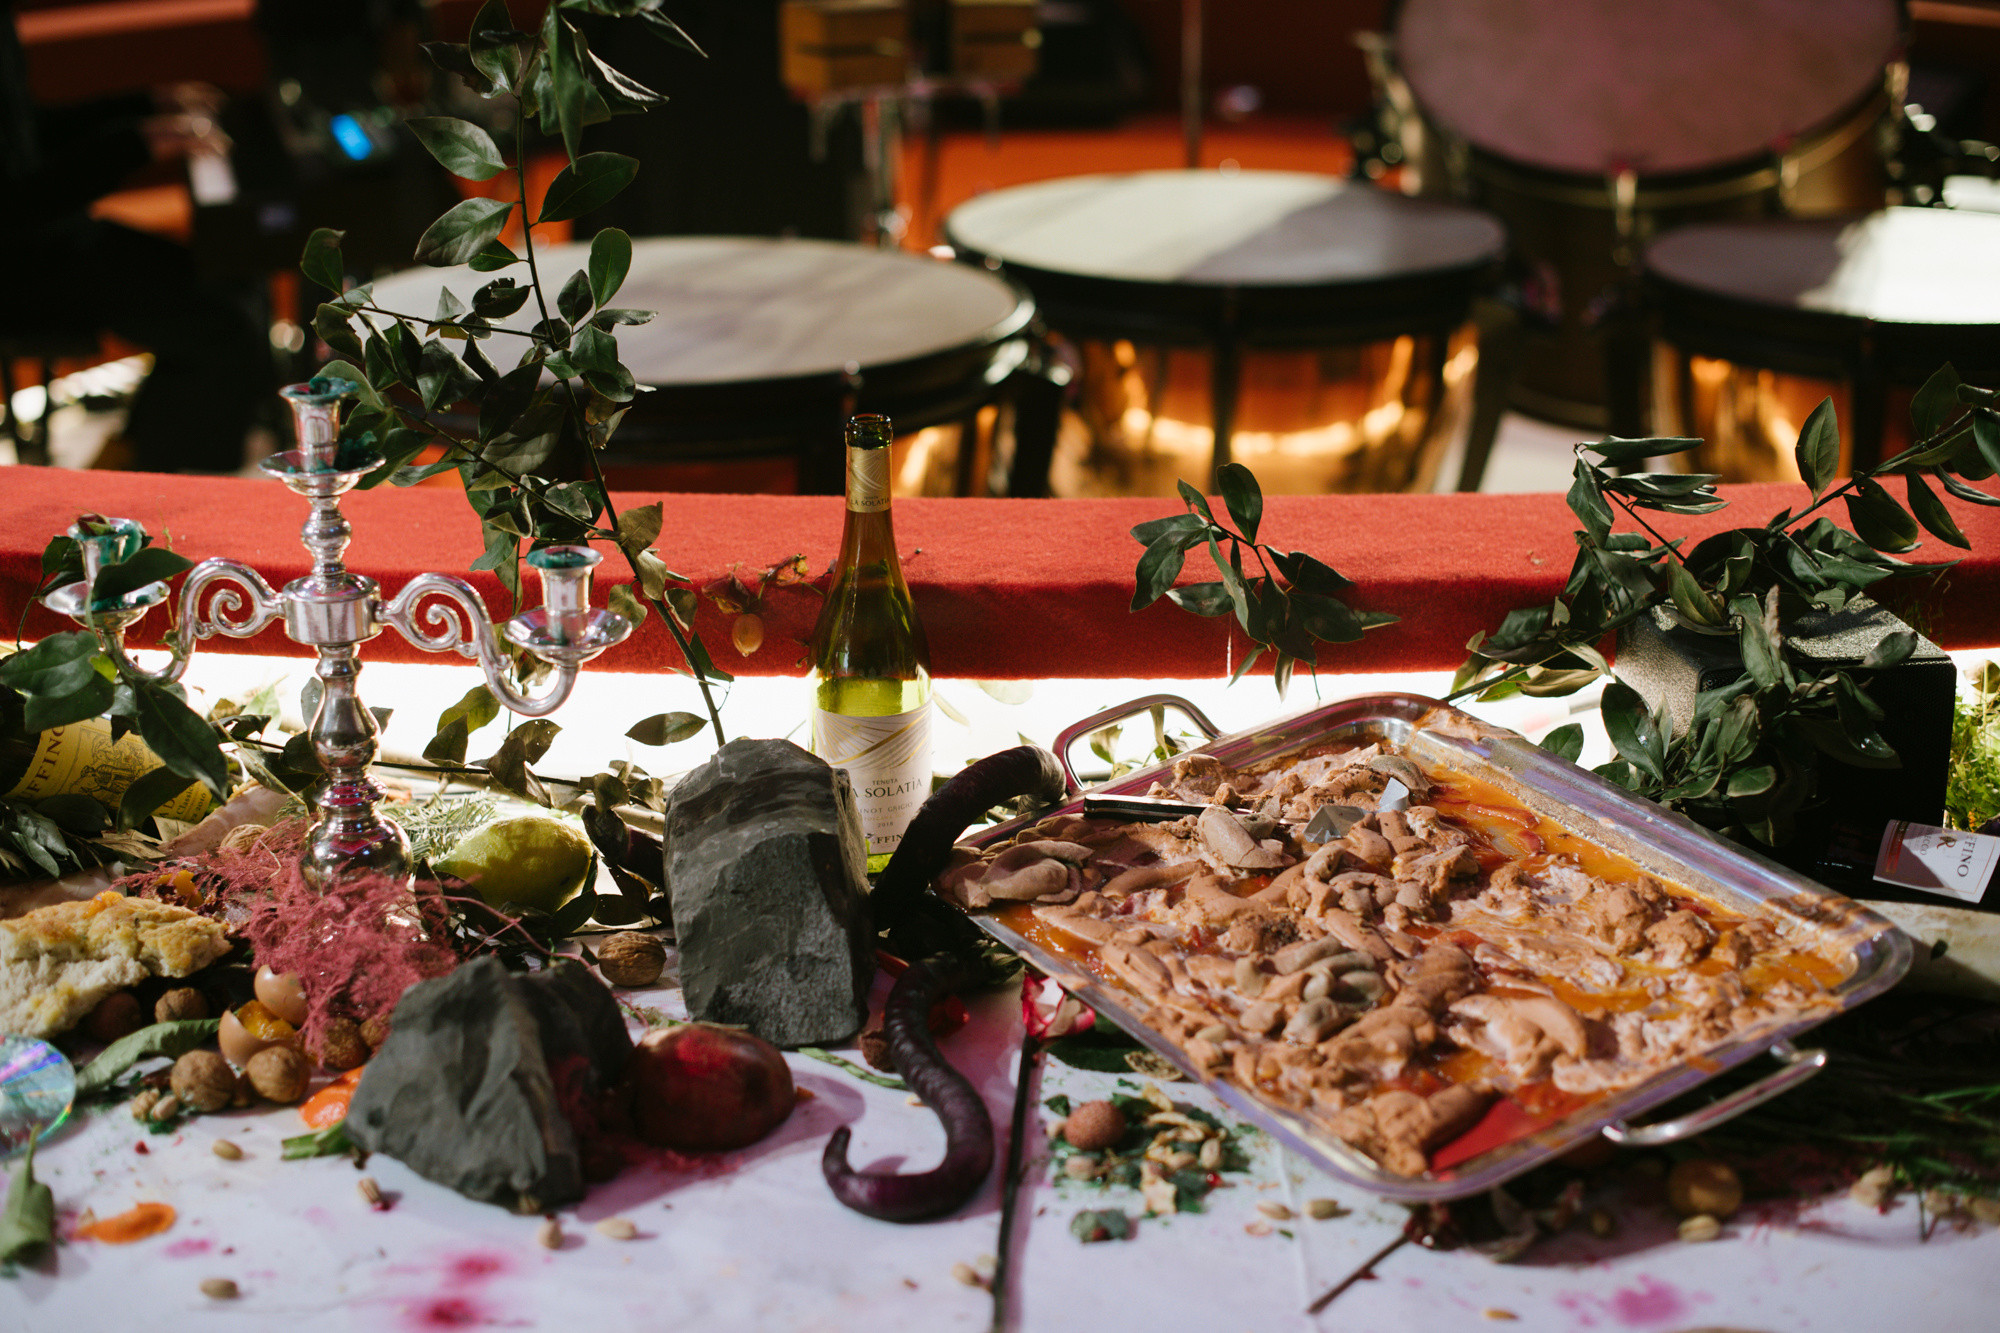 A tablescape featuring leaves, rocks and discarded food items like egg shells.